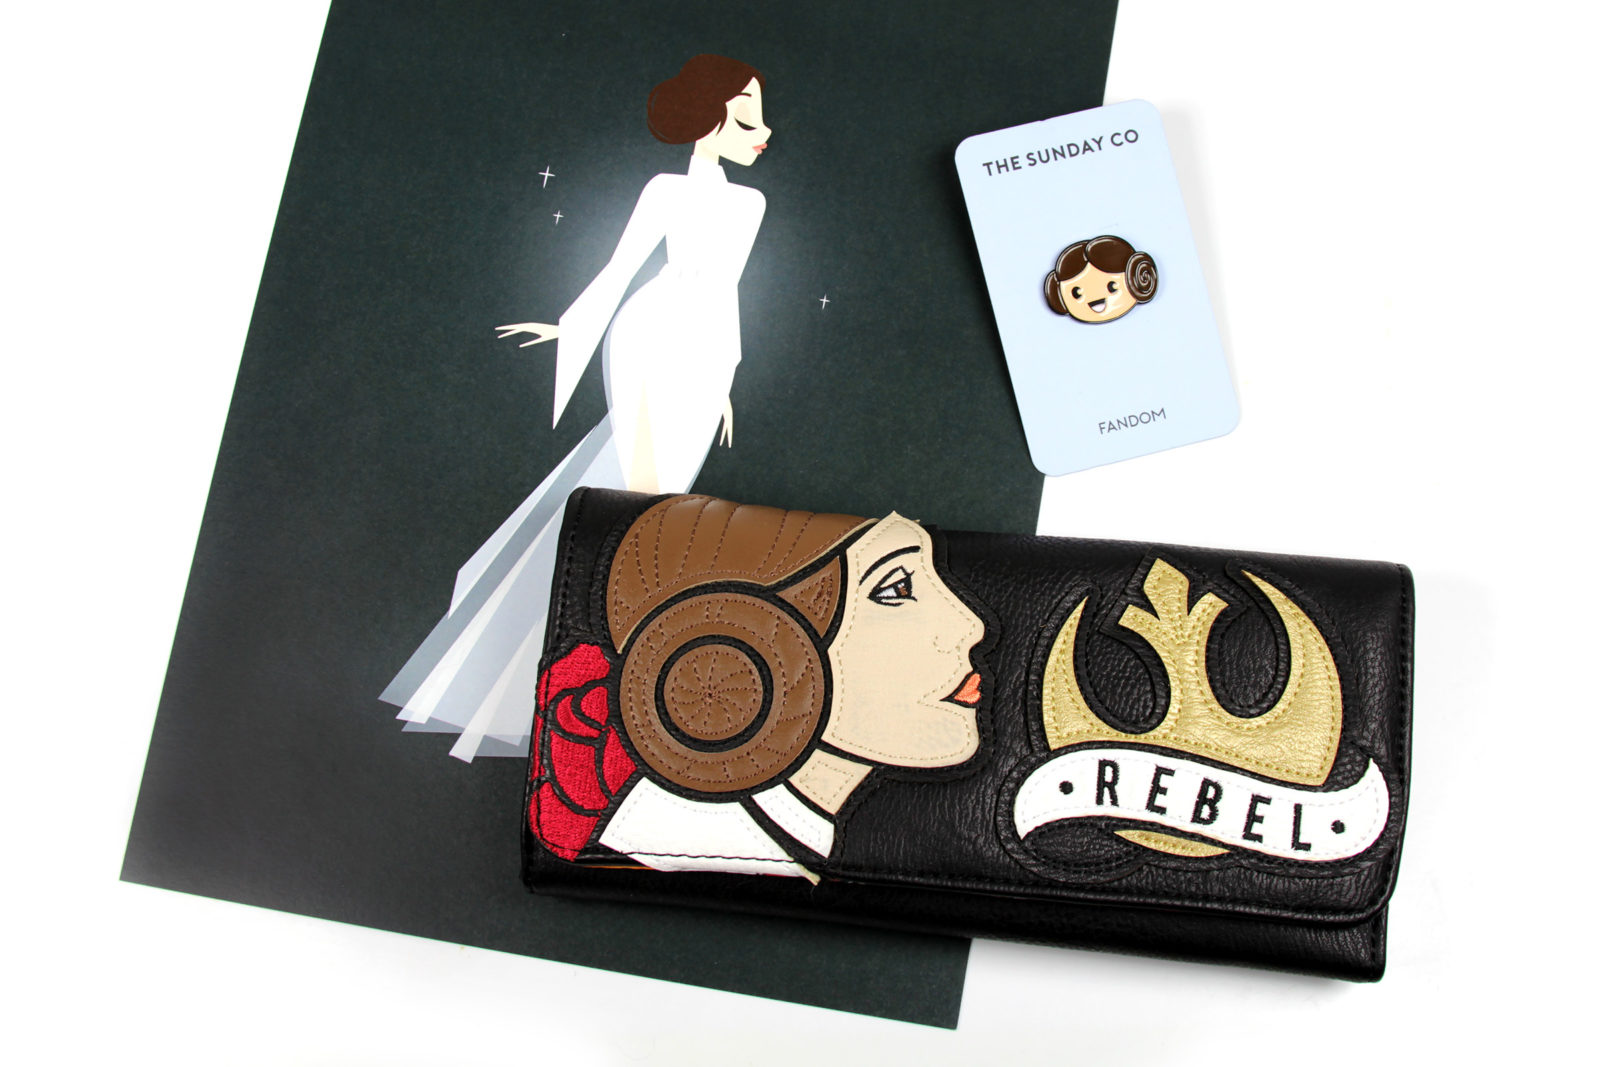 Armageddon Expo – Shopping for Princess Leia